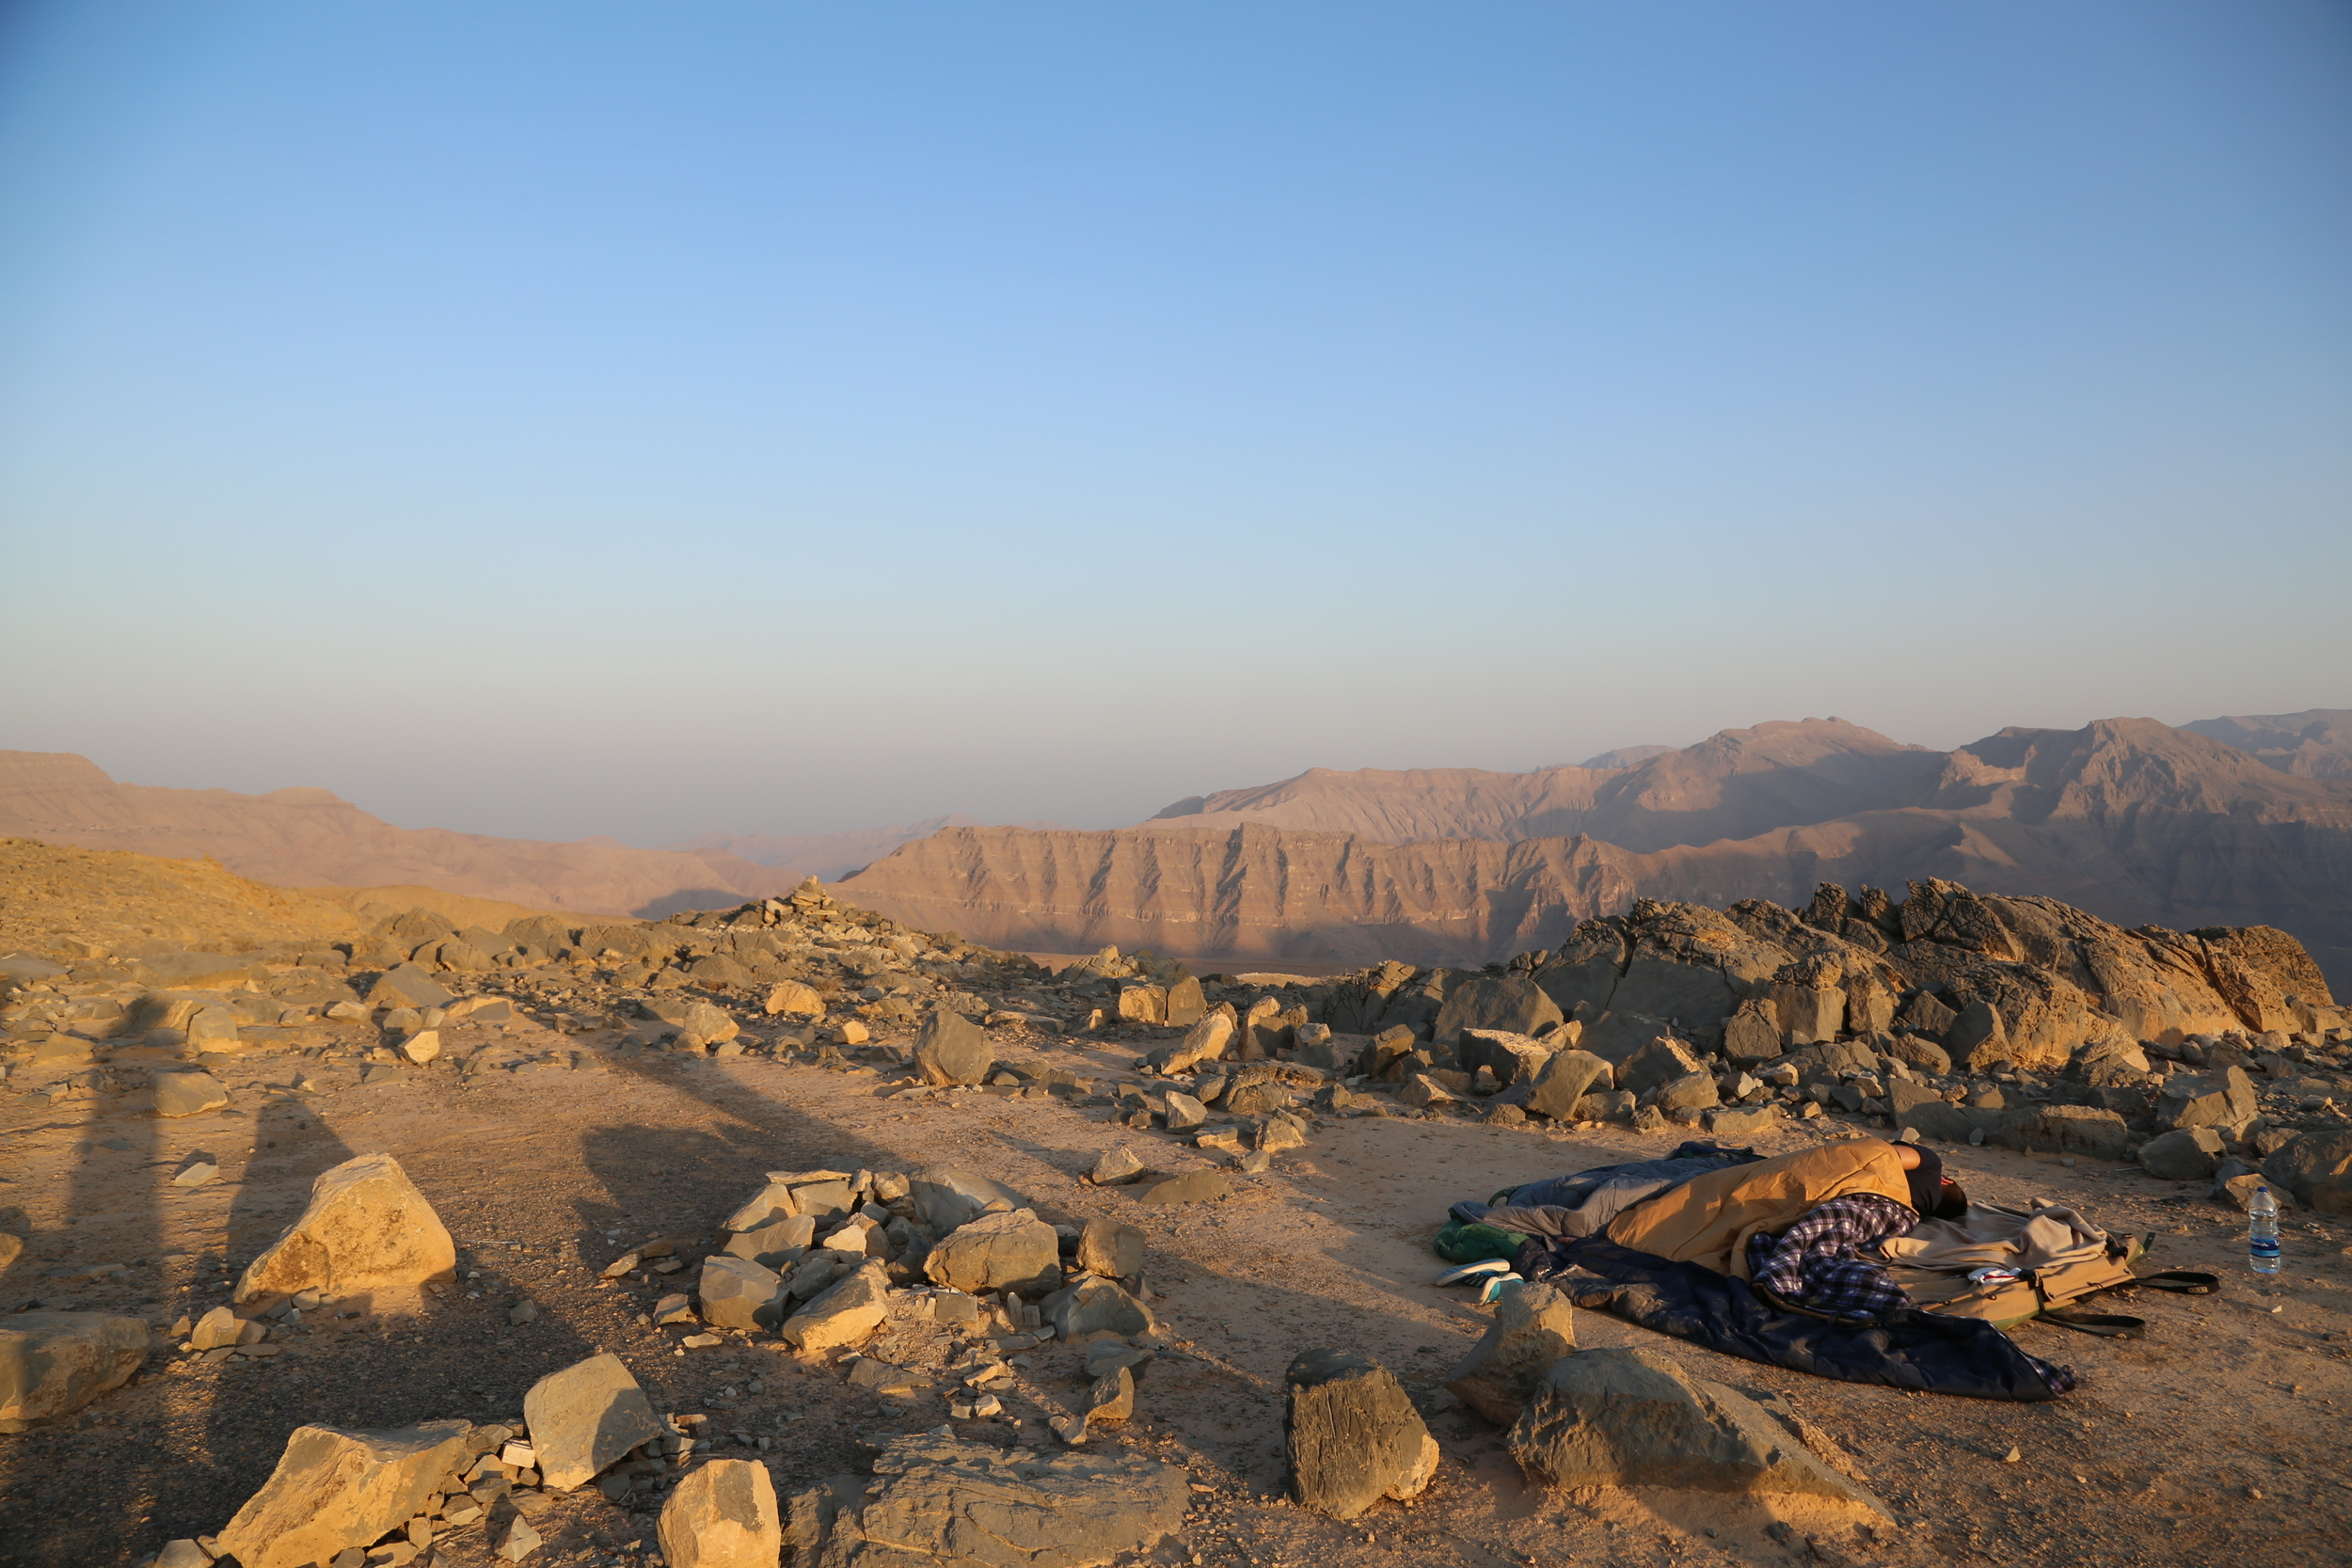 The link to my recent trip to Dibba, Musandam.